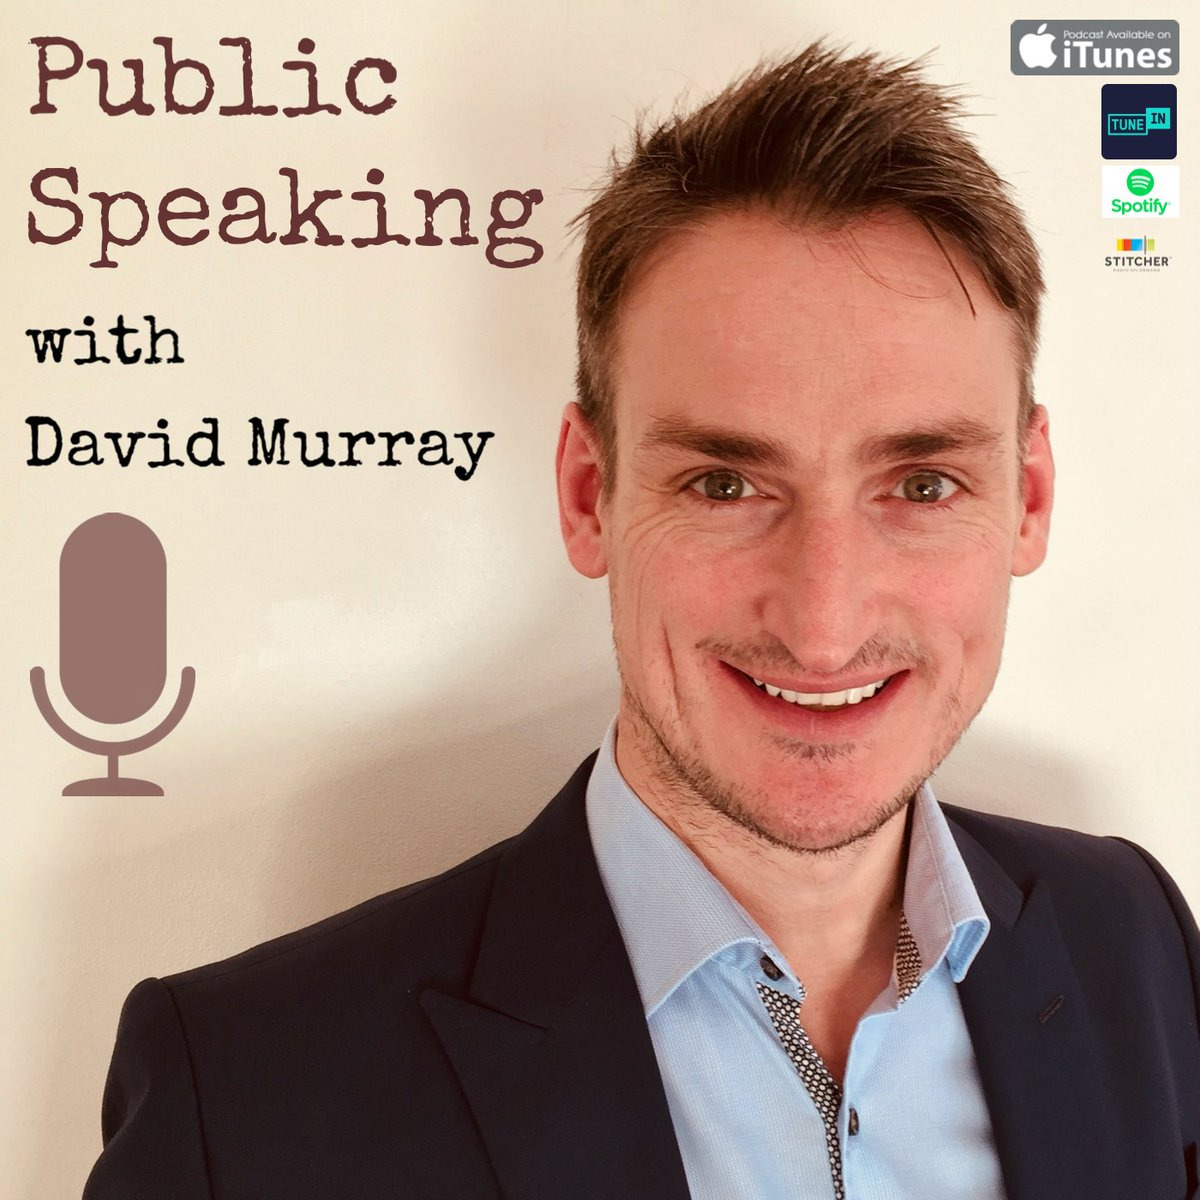 """Delivering a speech or presentation this week? Share your message with confidence and flair by listening to the #Publicspeaking with David Murray podcast.  How a """"KISS"""" can ensure you're understood! http://ow.ly/d3ZH50yzjKg  #communicatewithconfidence #presentationskillspic.twitter.com/oXeEicAKj6"""